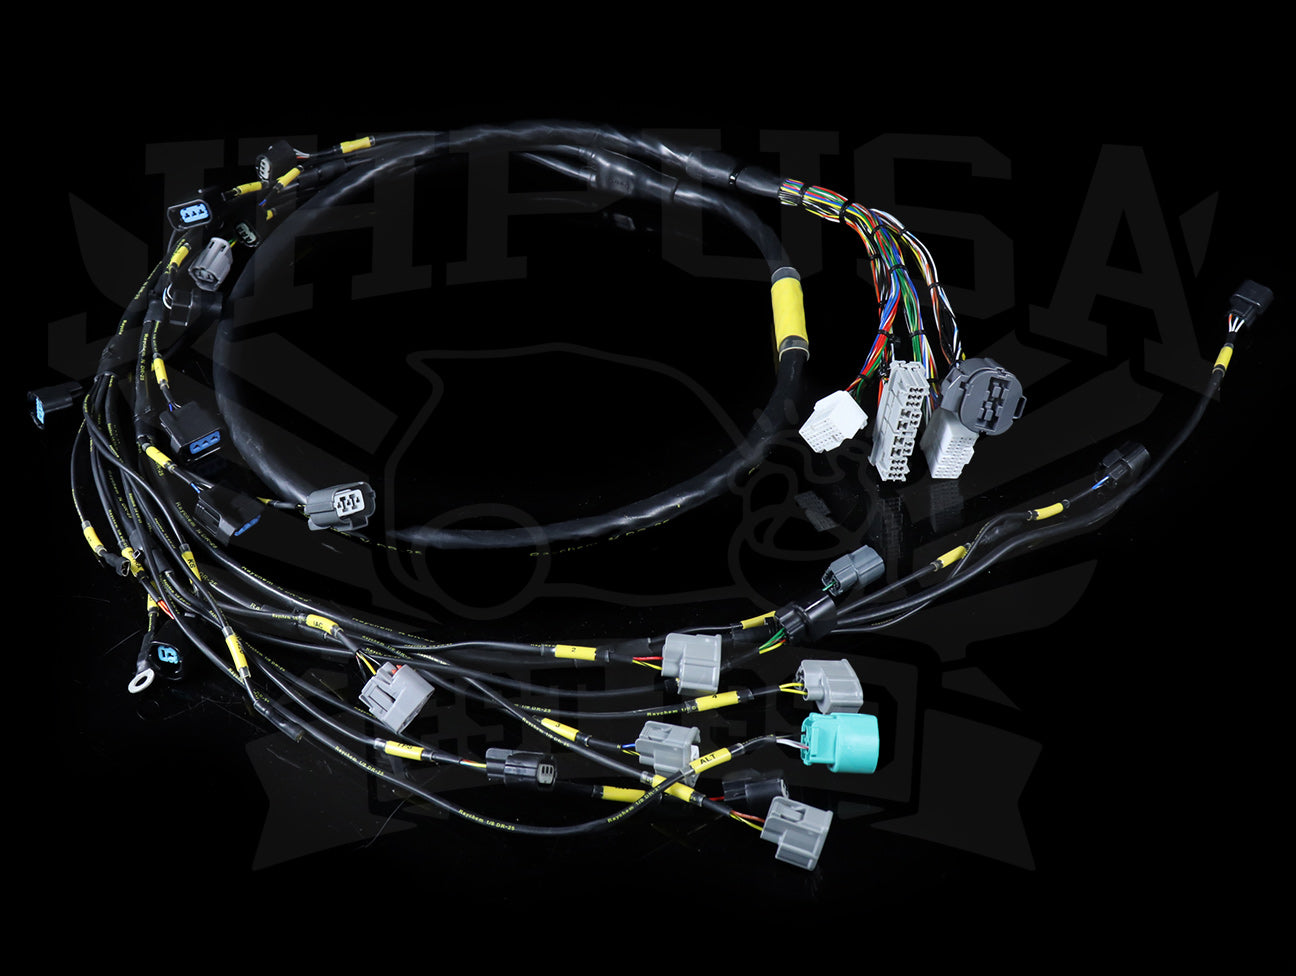 Wiring Harness Modification Tags Engine Harness Engine Swap Harness